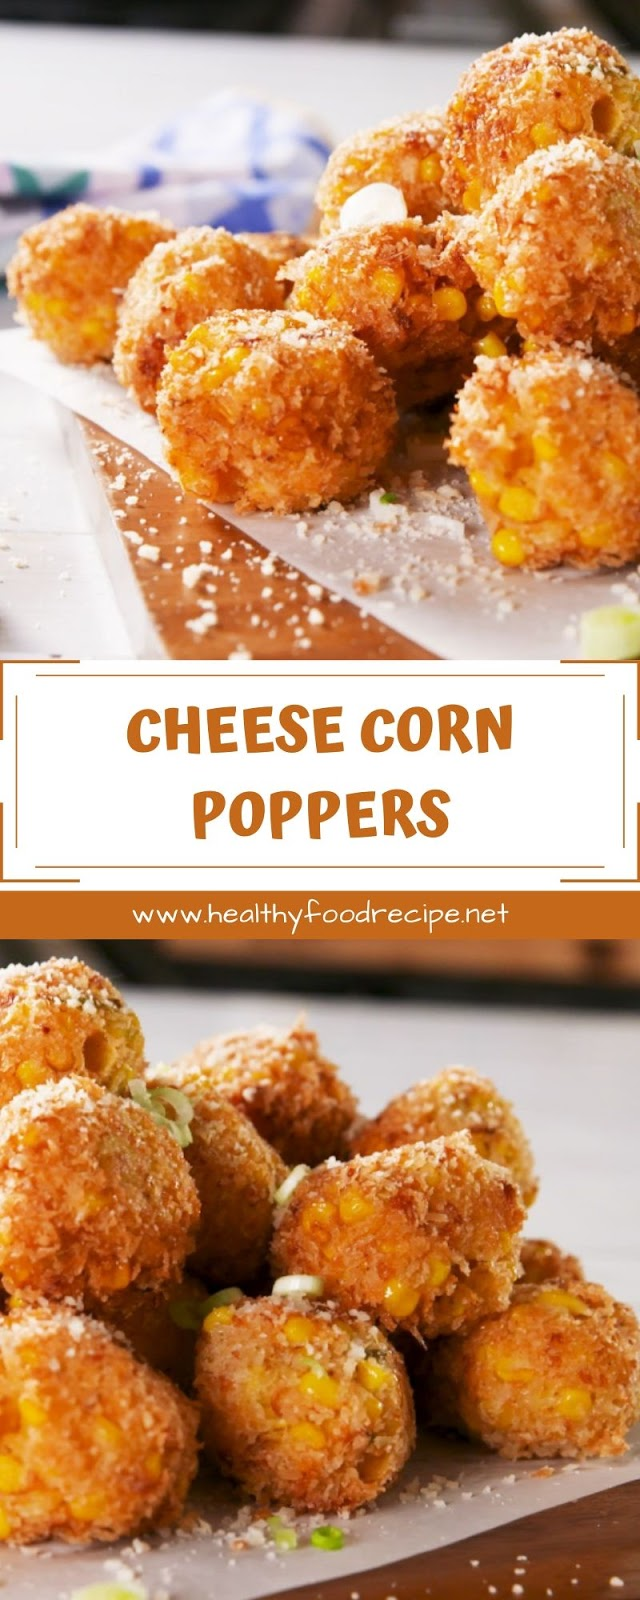 CHEESE CORN POPPERS